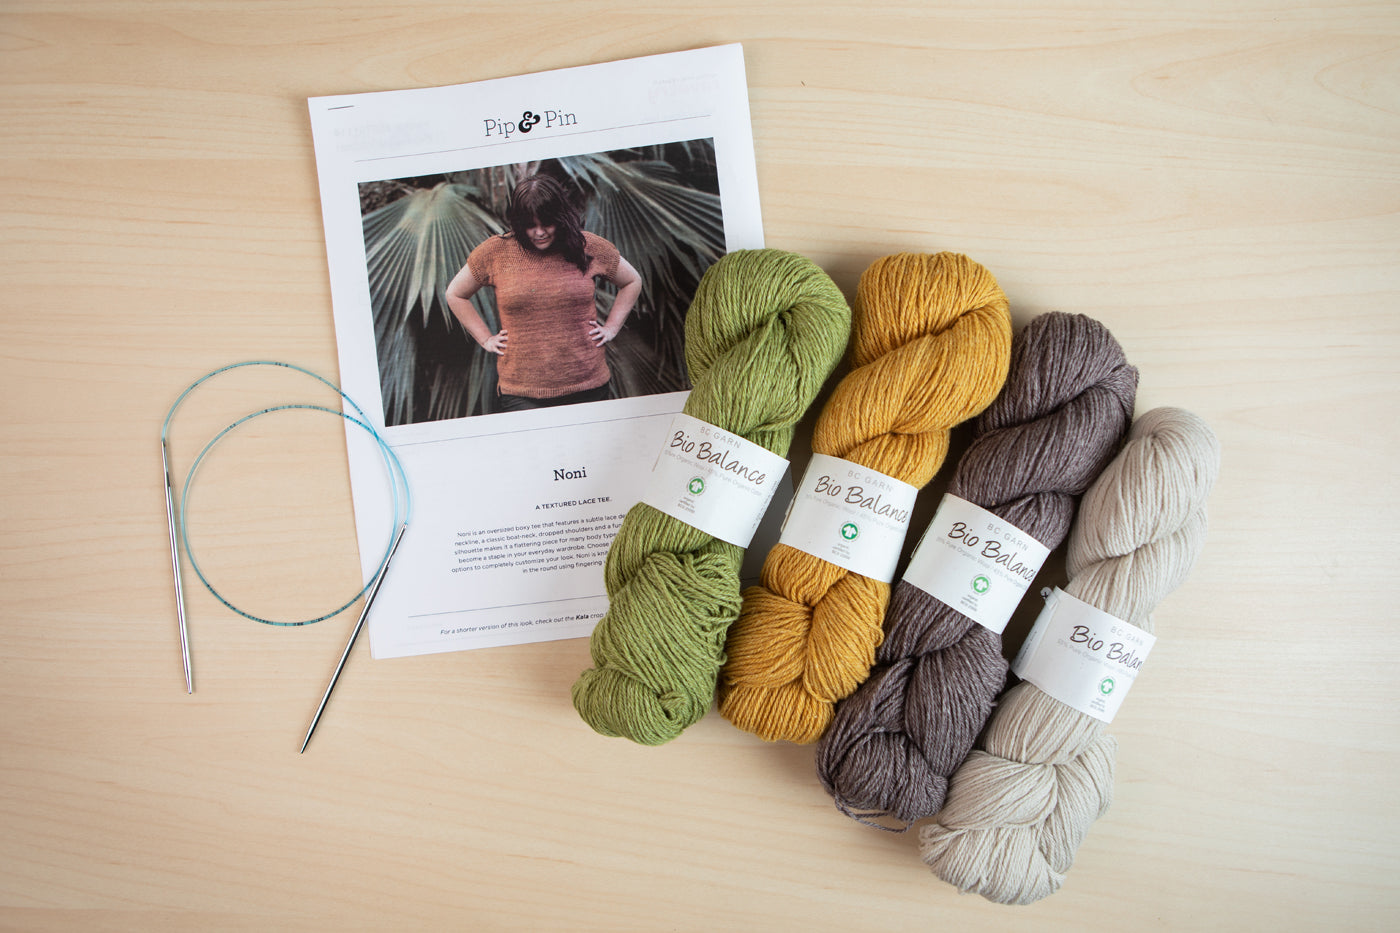 Sarahs chosen Noni pattern, four colors of BioBalance yarn and a set of knitting needles lay on a light wood background.